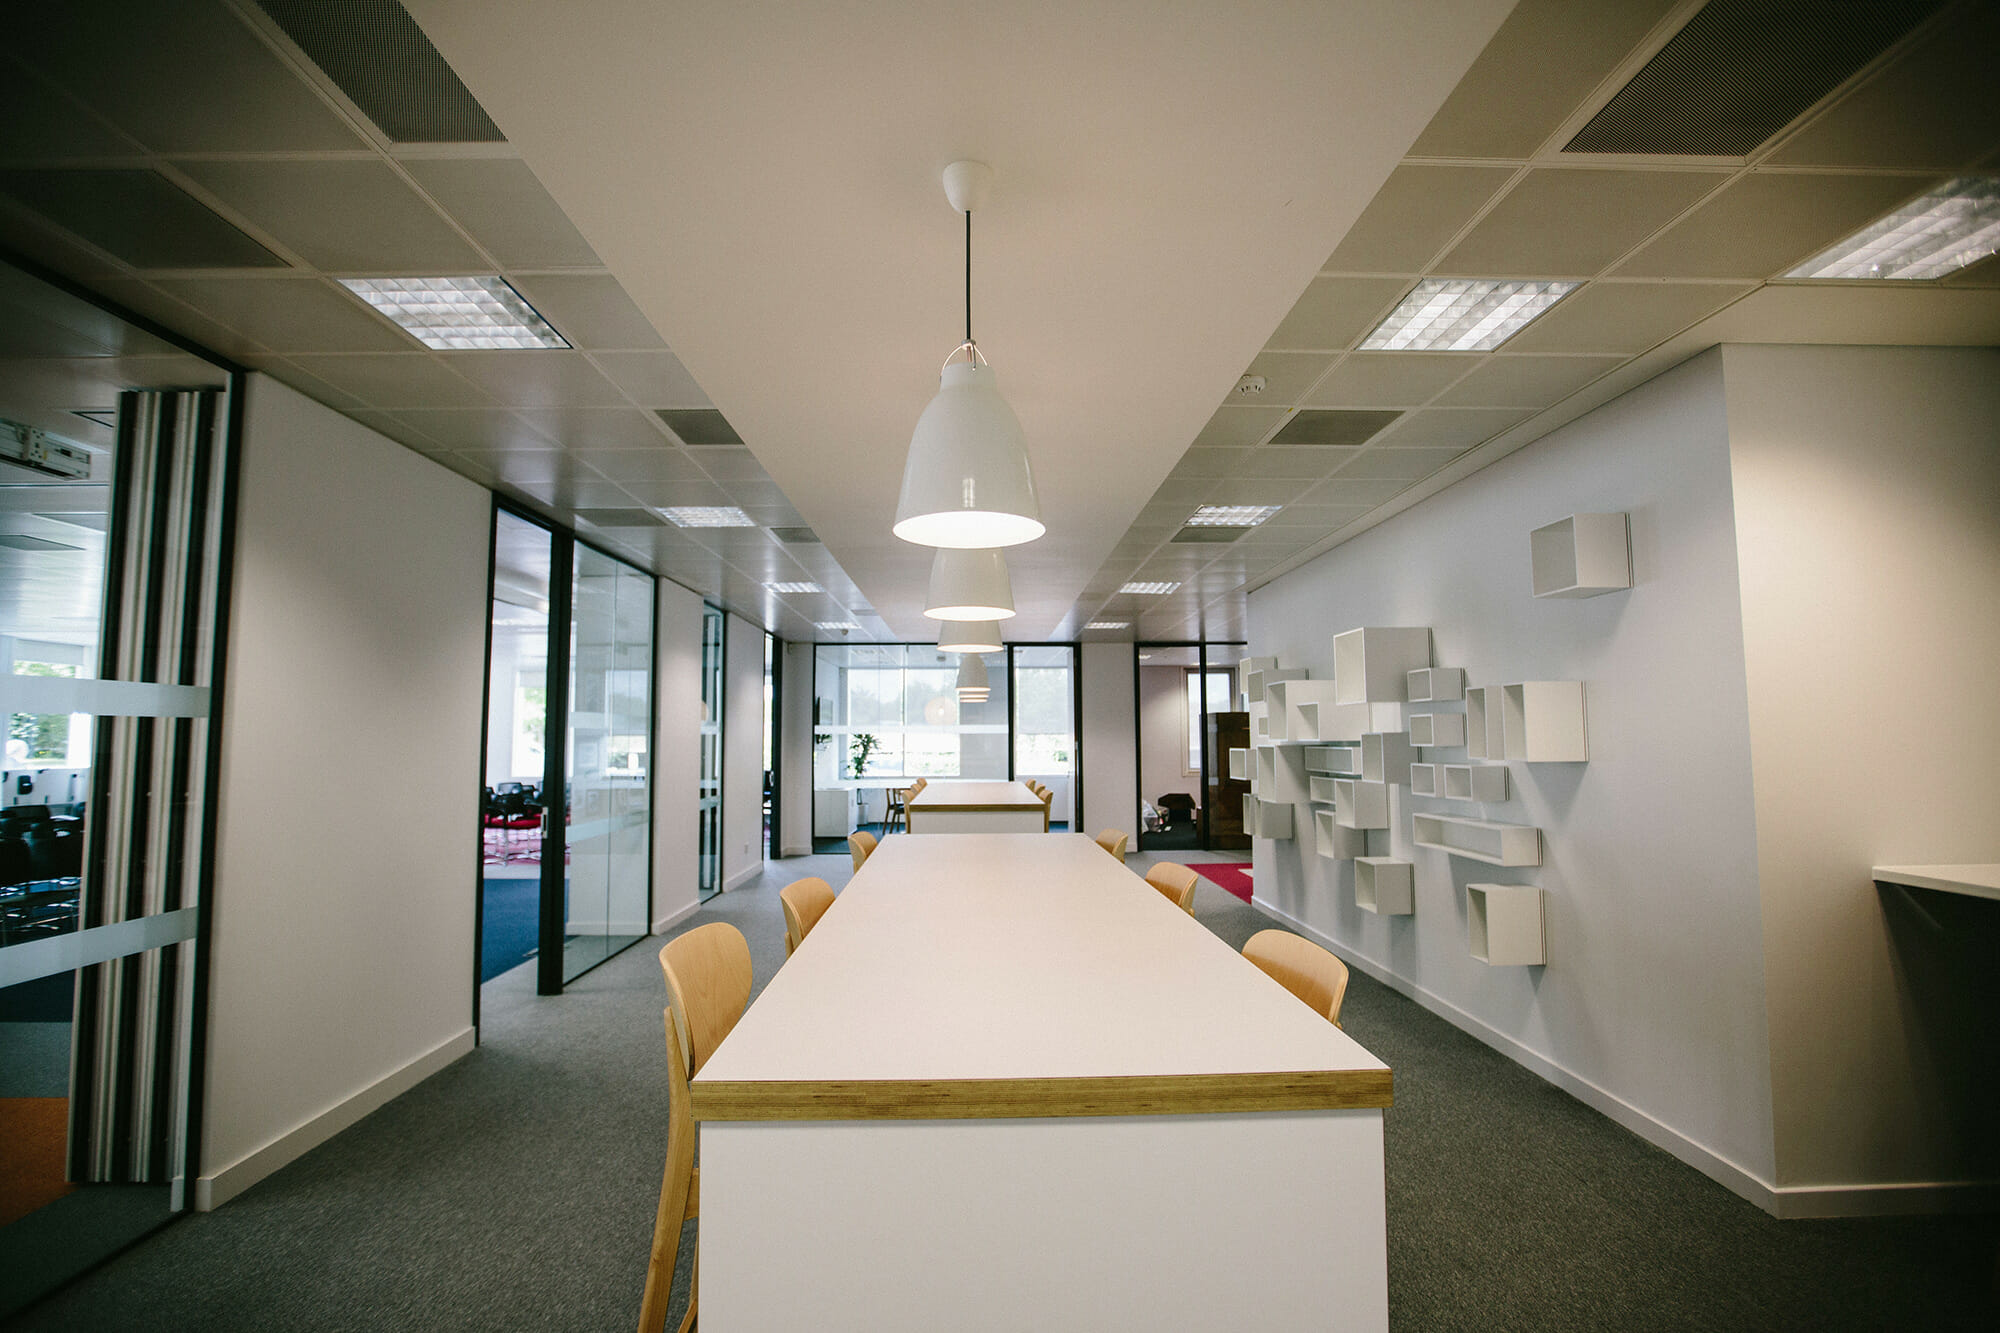 Eden Interior office design - Case Study - Slide 3